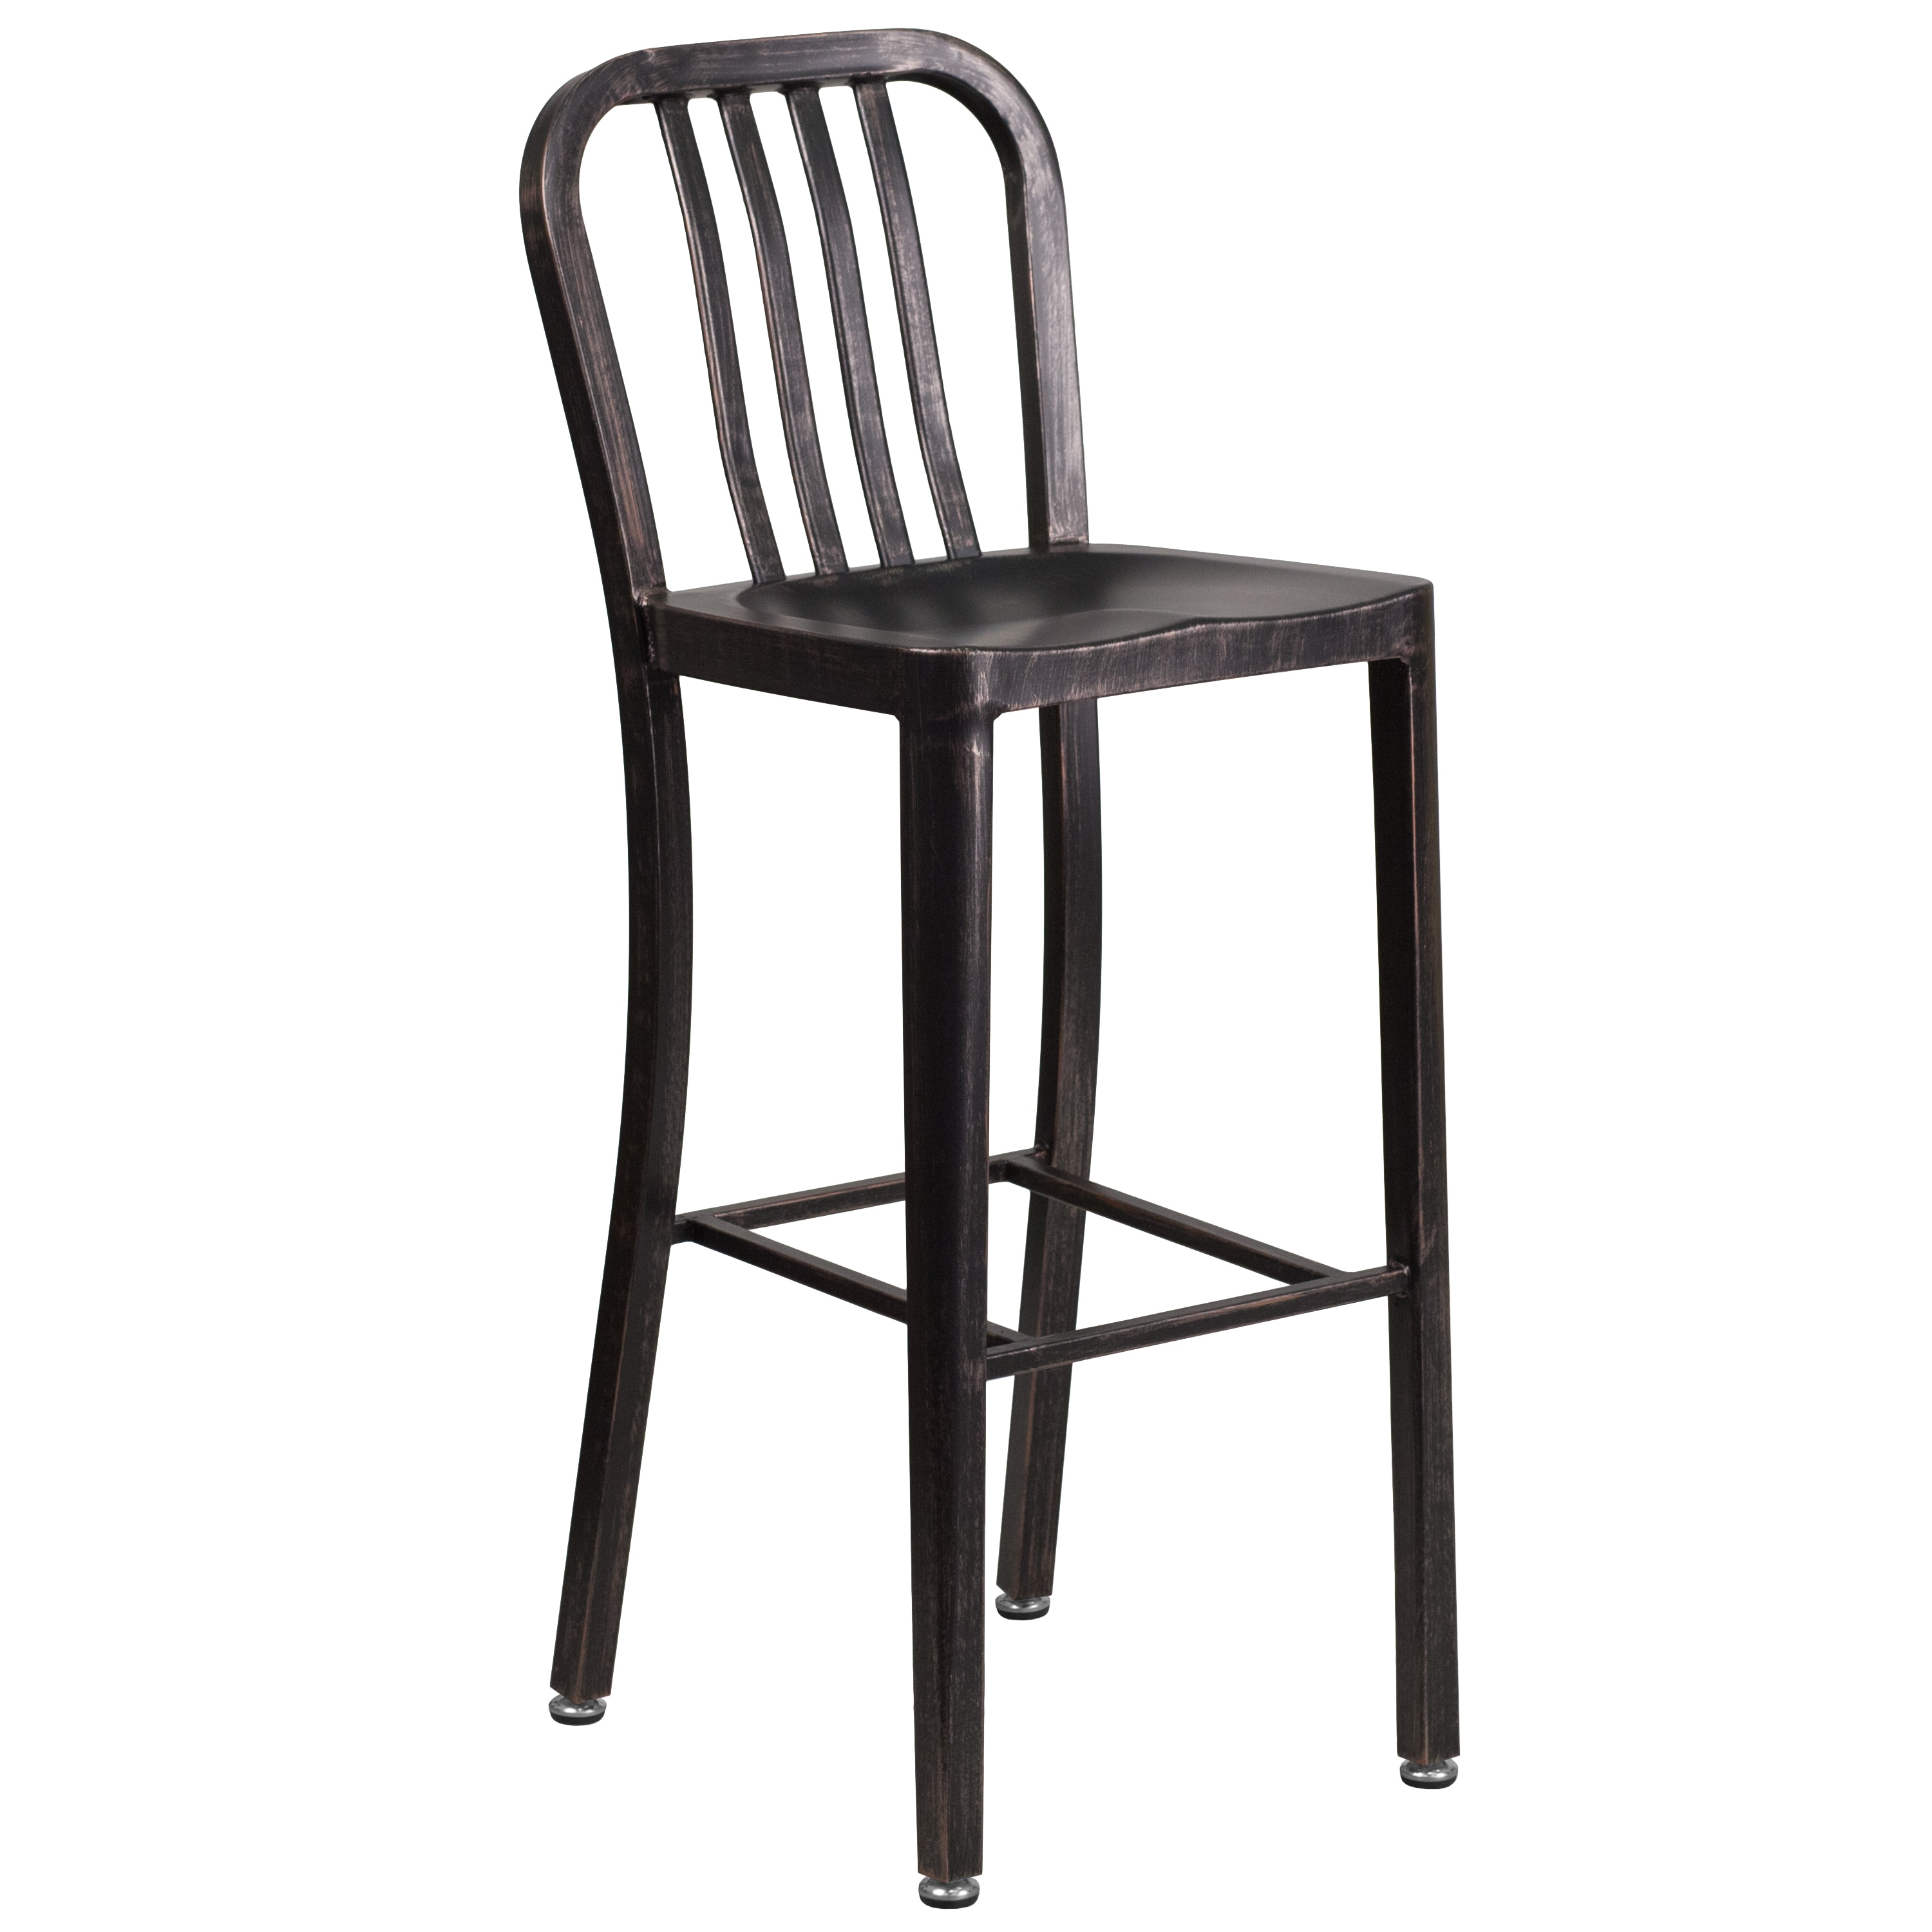 Lancaster Home 30'' High Metal Indoor-Outdoor Barstool with Vertical Slat Back